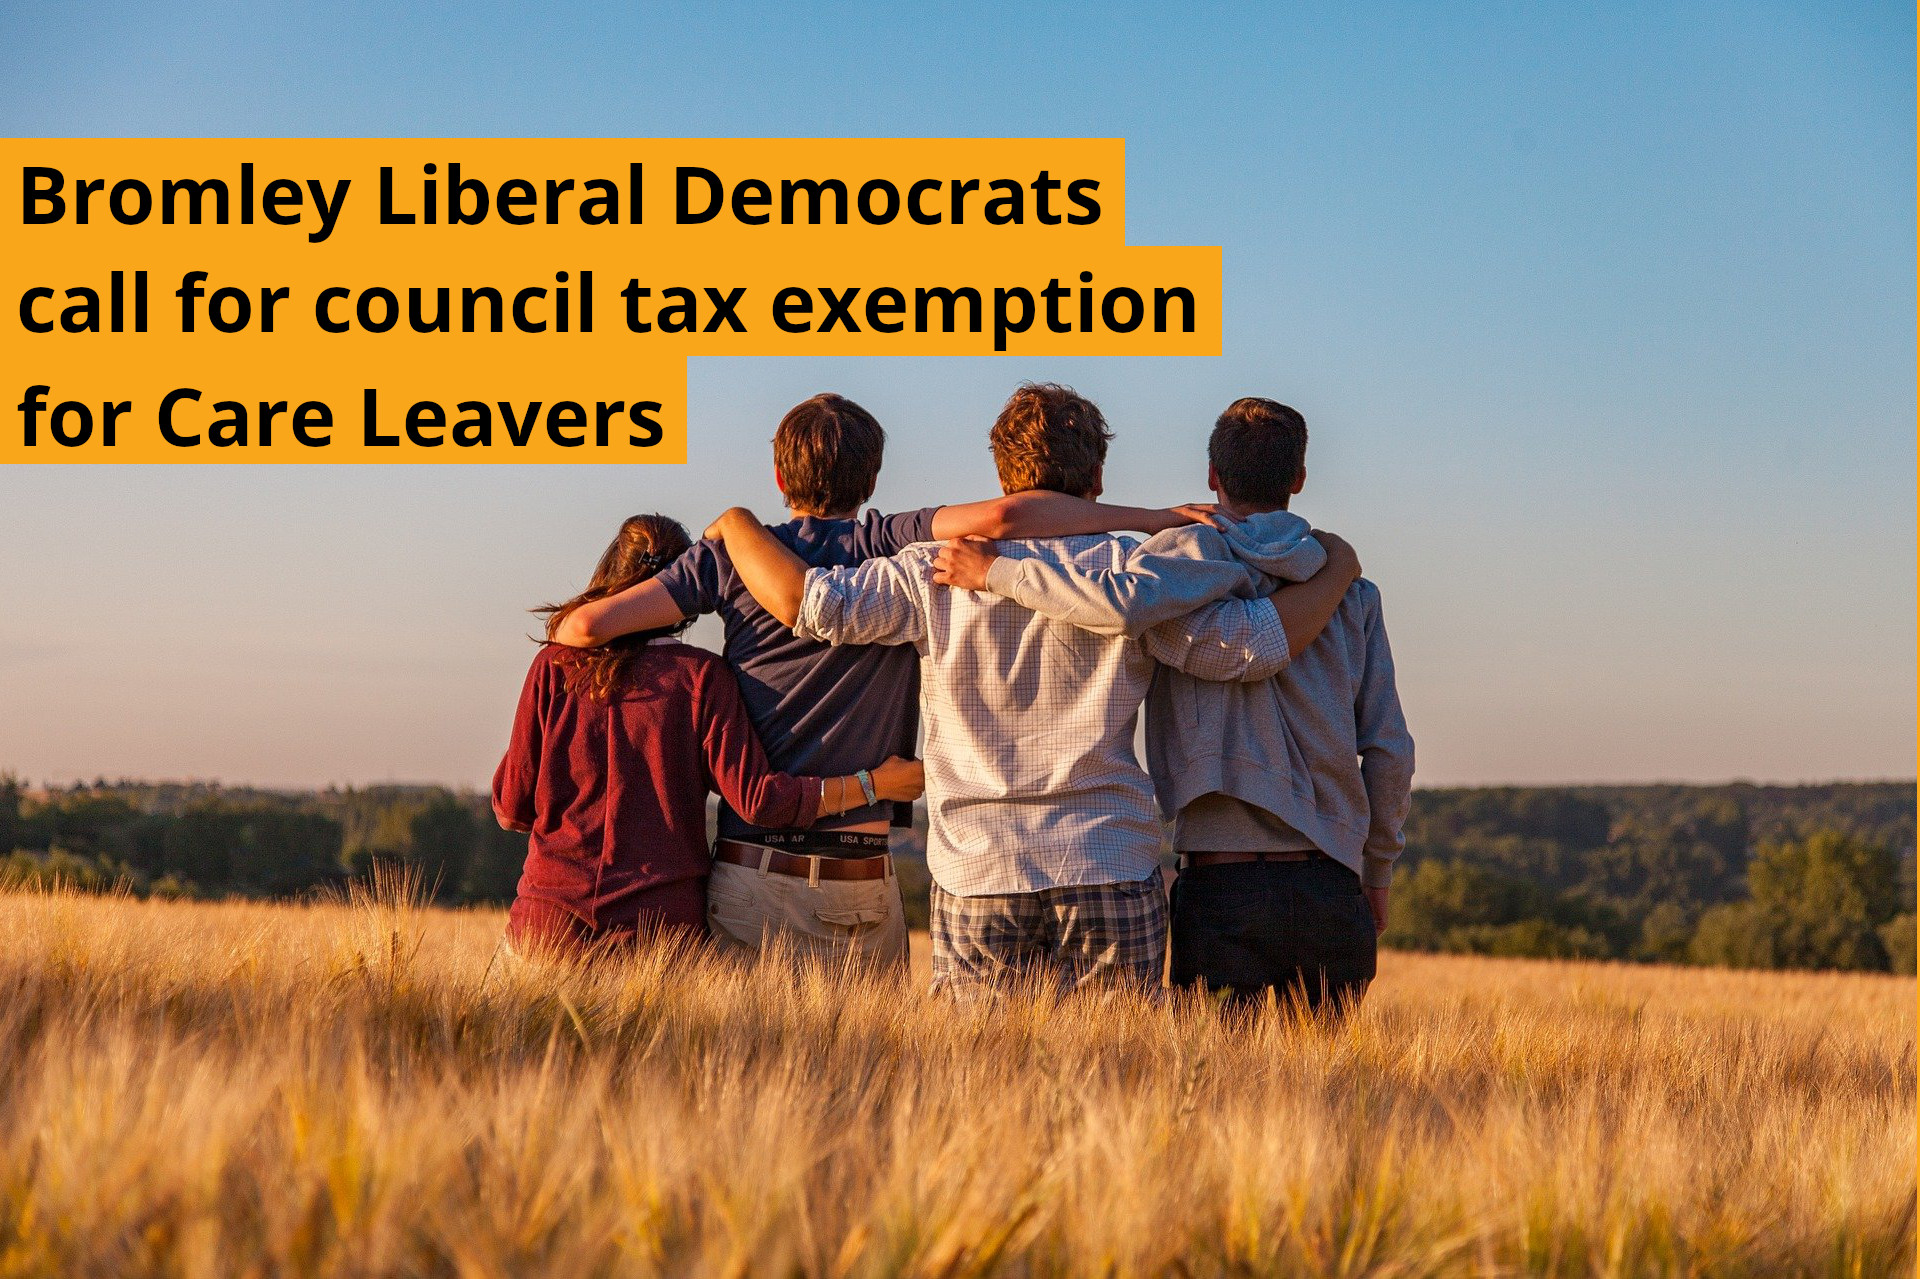 Petition: Care Leavers in Bromley should be exempt from council tax